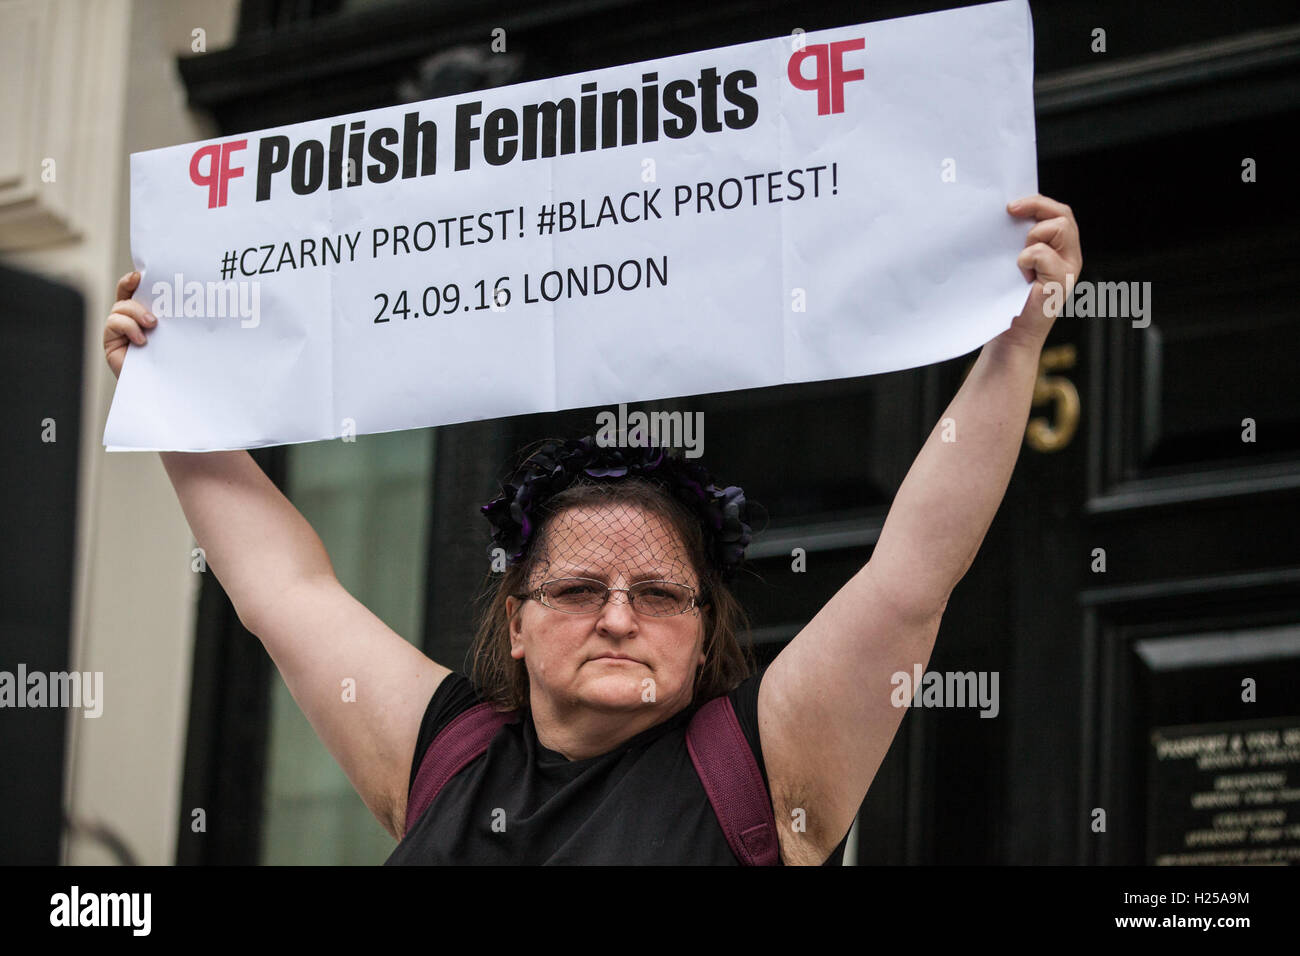 https://c8.alamy.com/comp/H25A9M/london-uk-24th-september-2016-a-polish-feminist-outside-the-polish-H25A9M.jpg